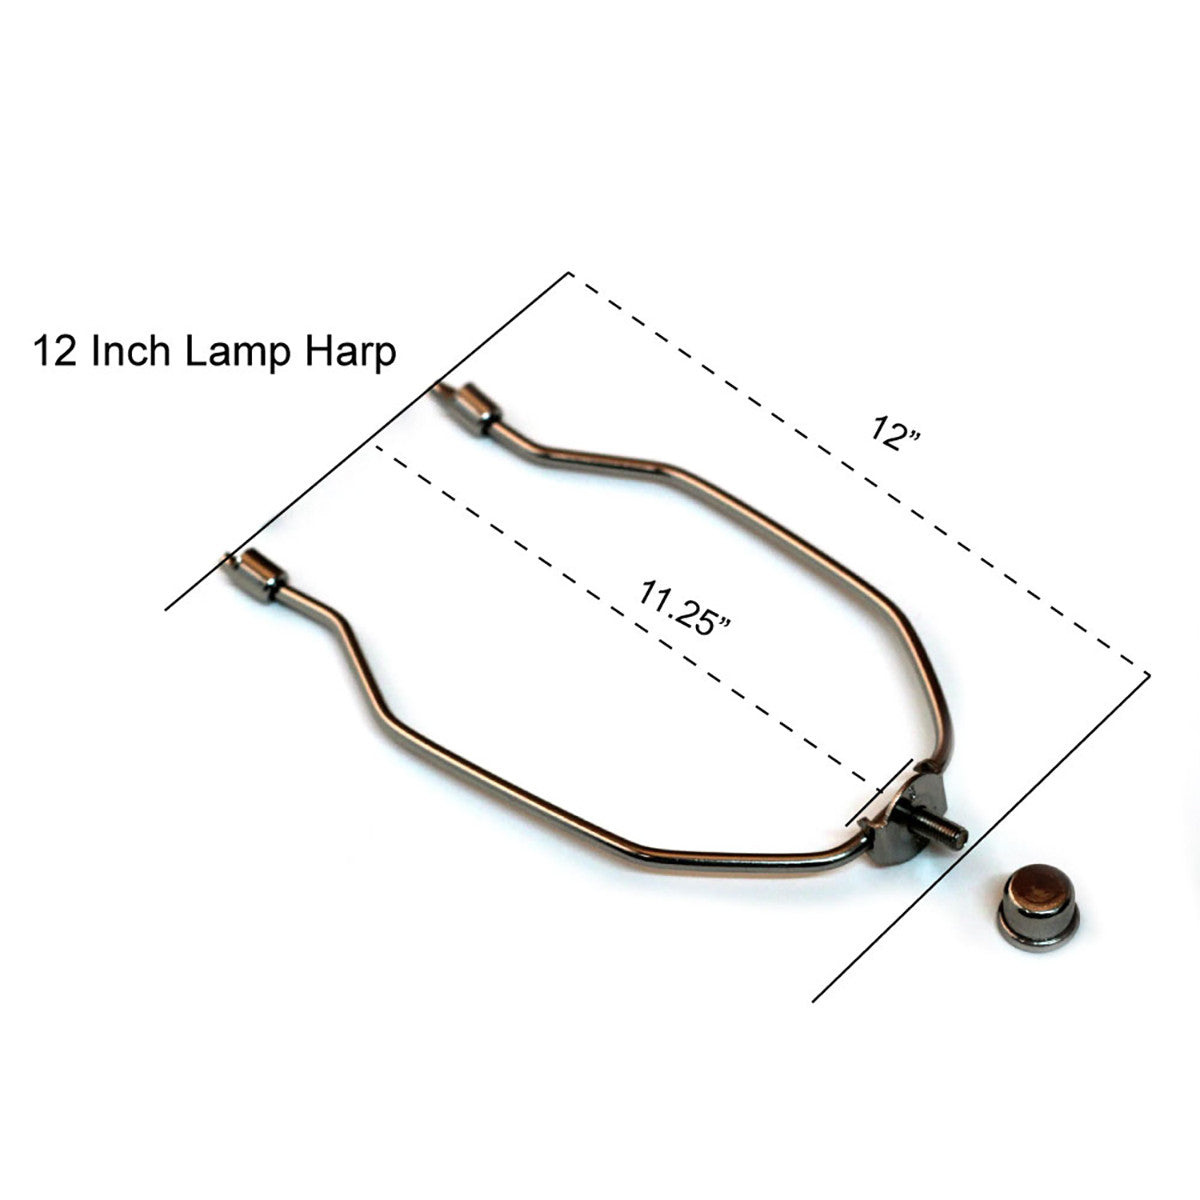 nickel-silver lamp harp kit